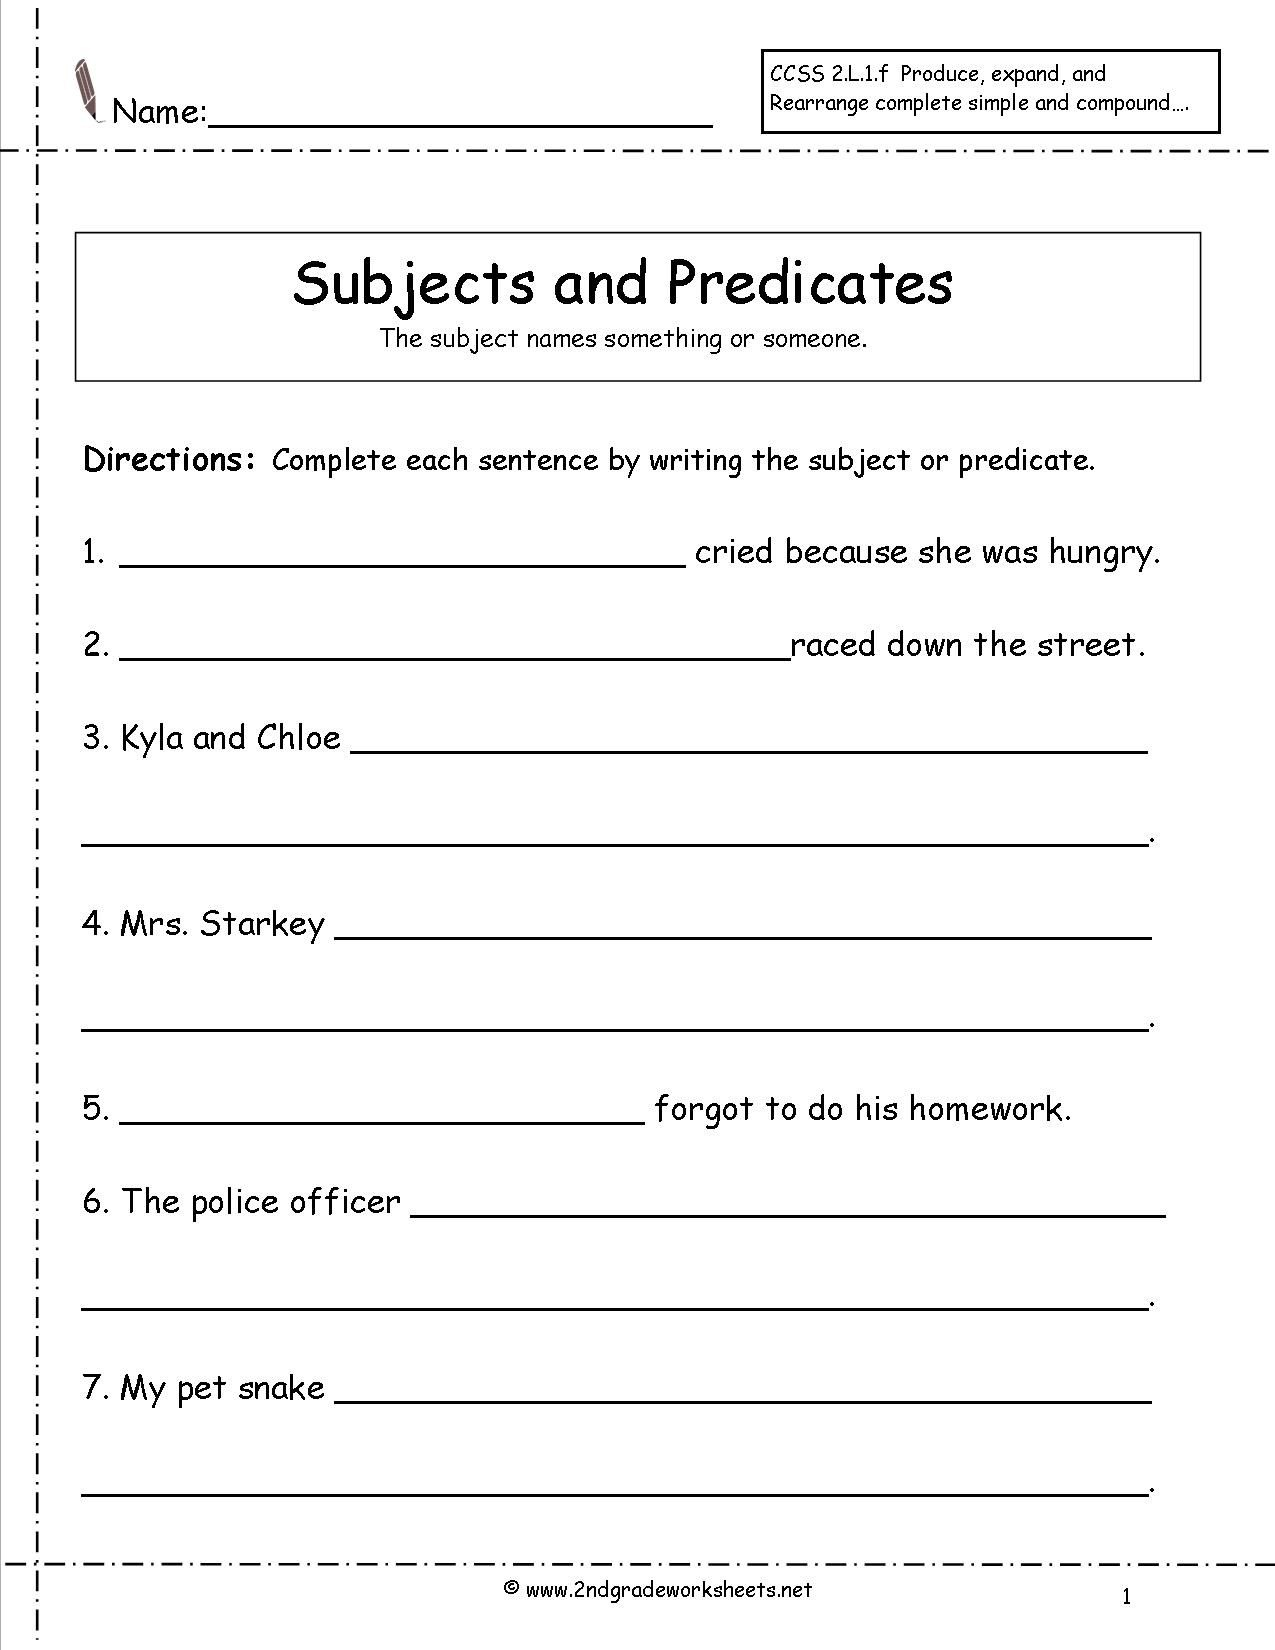 Subject And Predicate Worksheet | 2Rs 1.3 Henry And Mudge | Subject - Free Printable Subject Predicate Worksheets 2Nd Grade